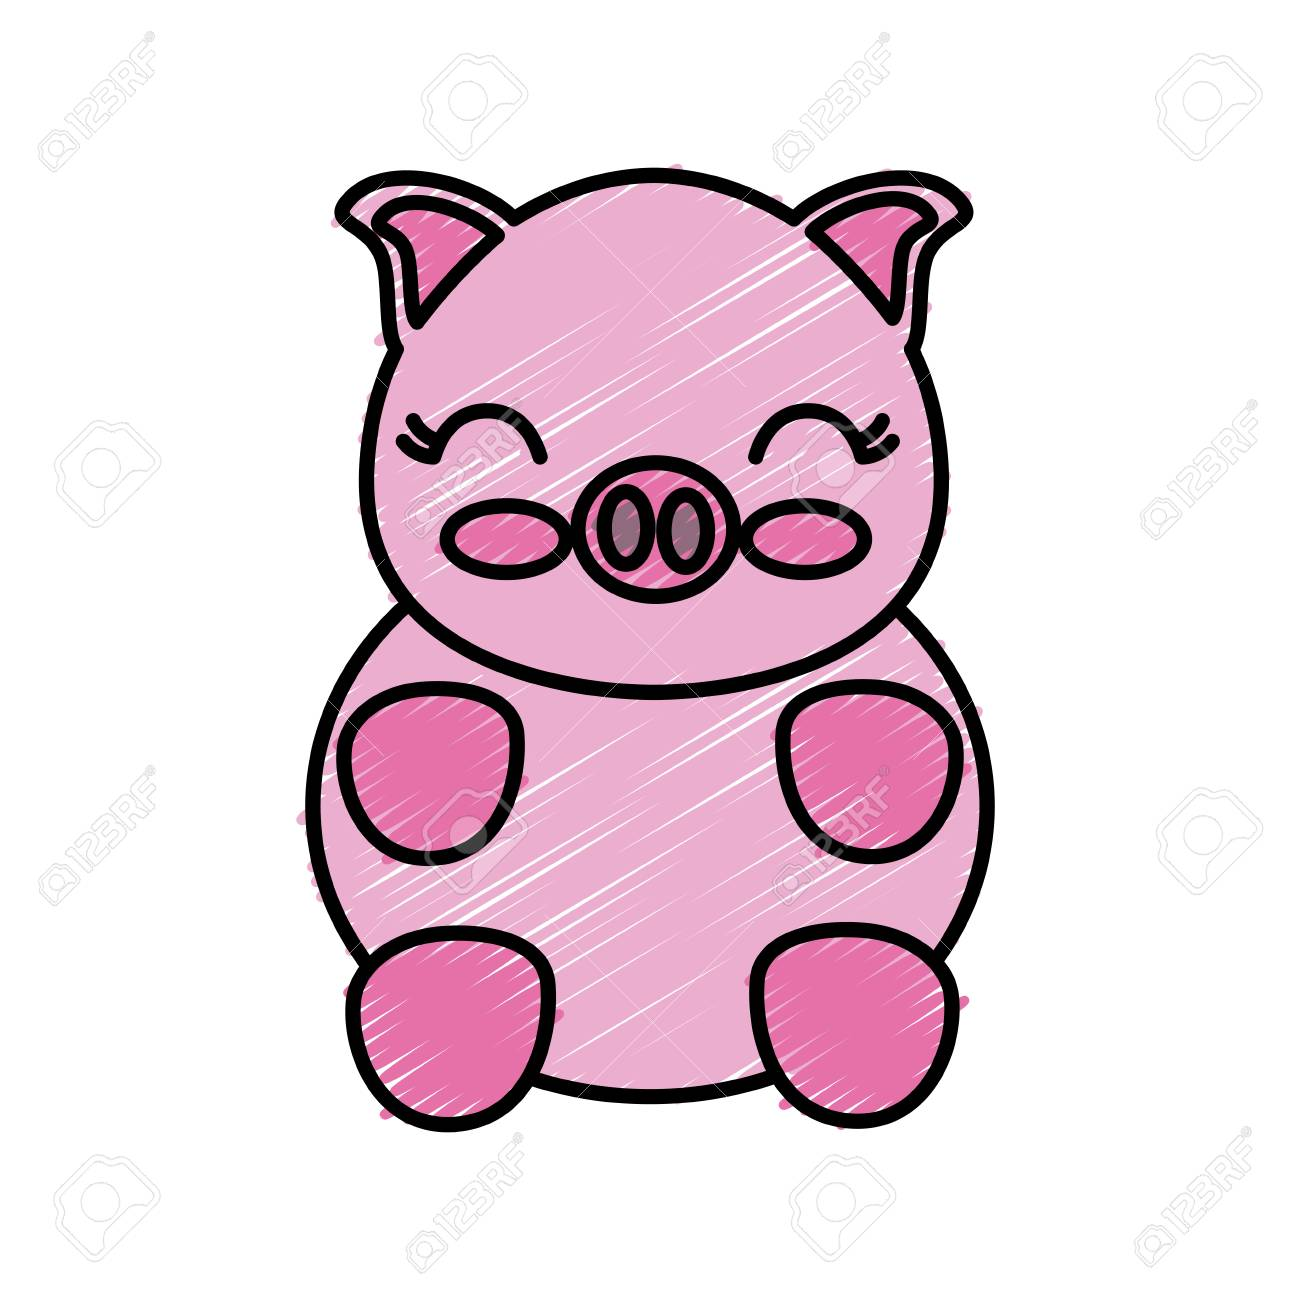 Kawaii Pig Animal Icon Over White Background Vector Illustration